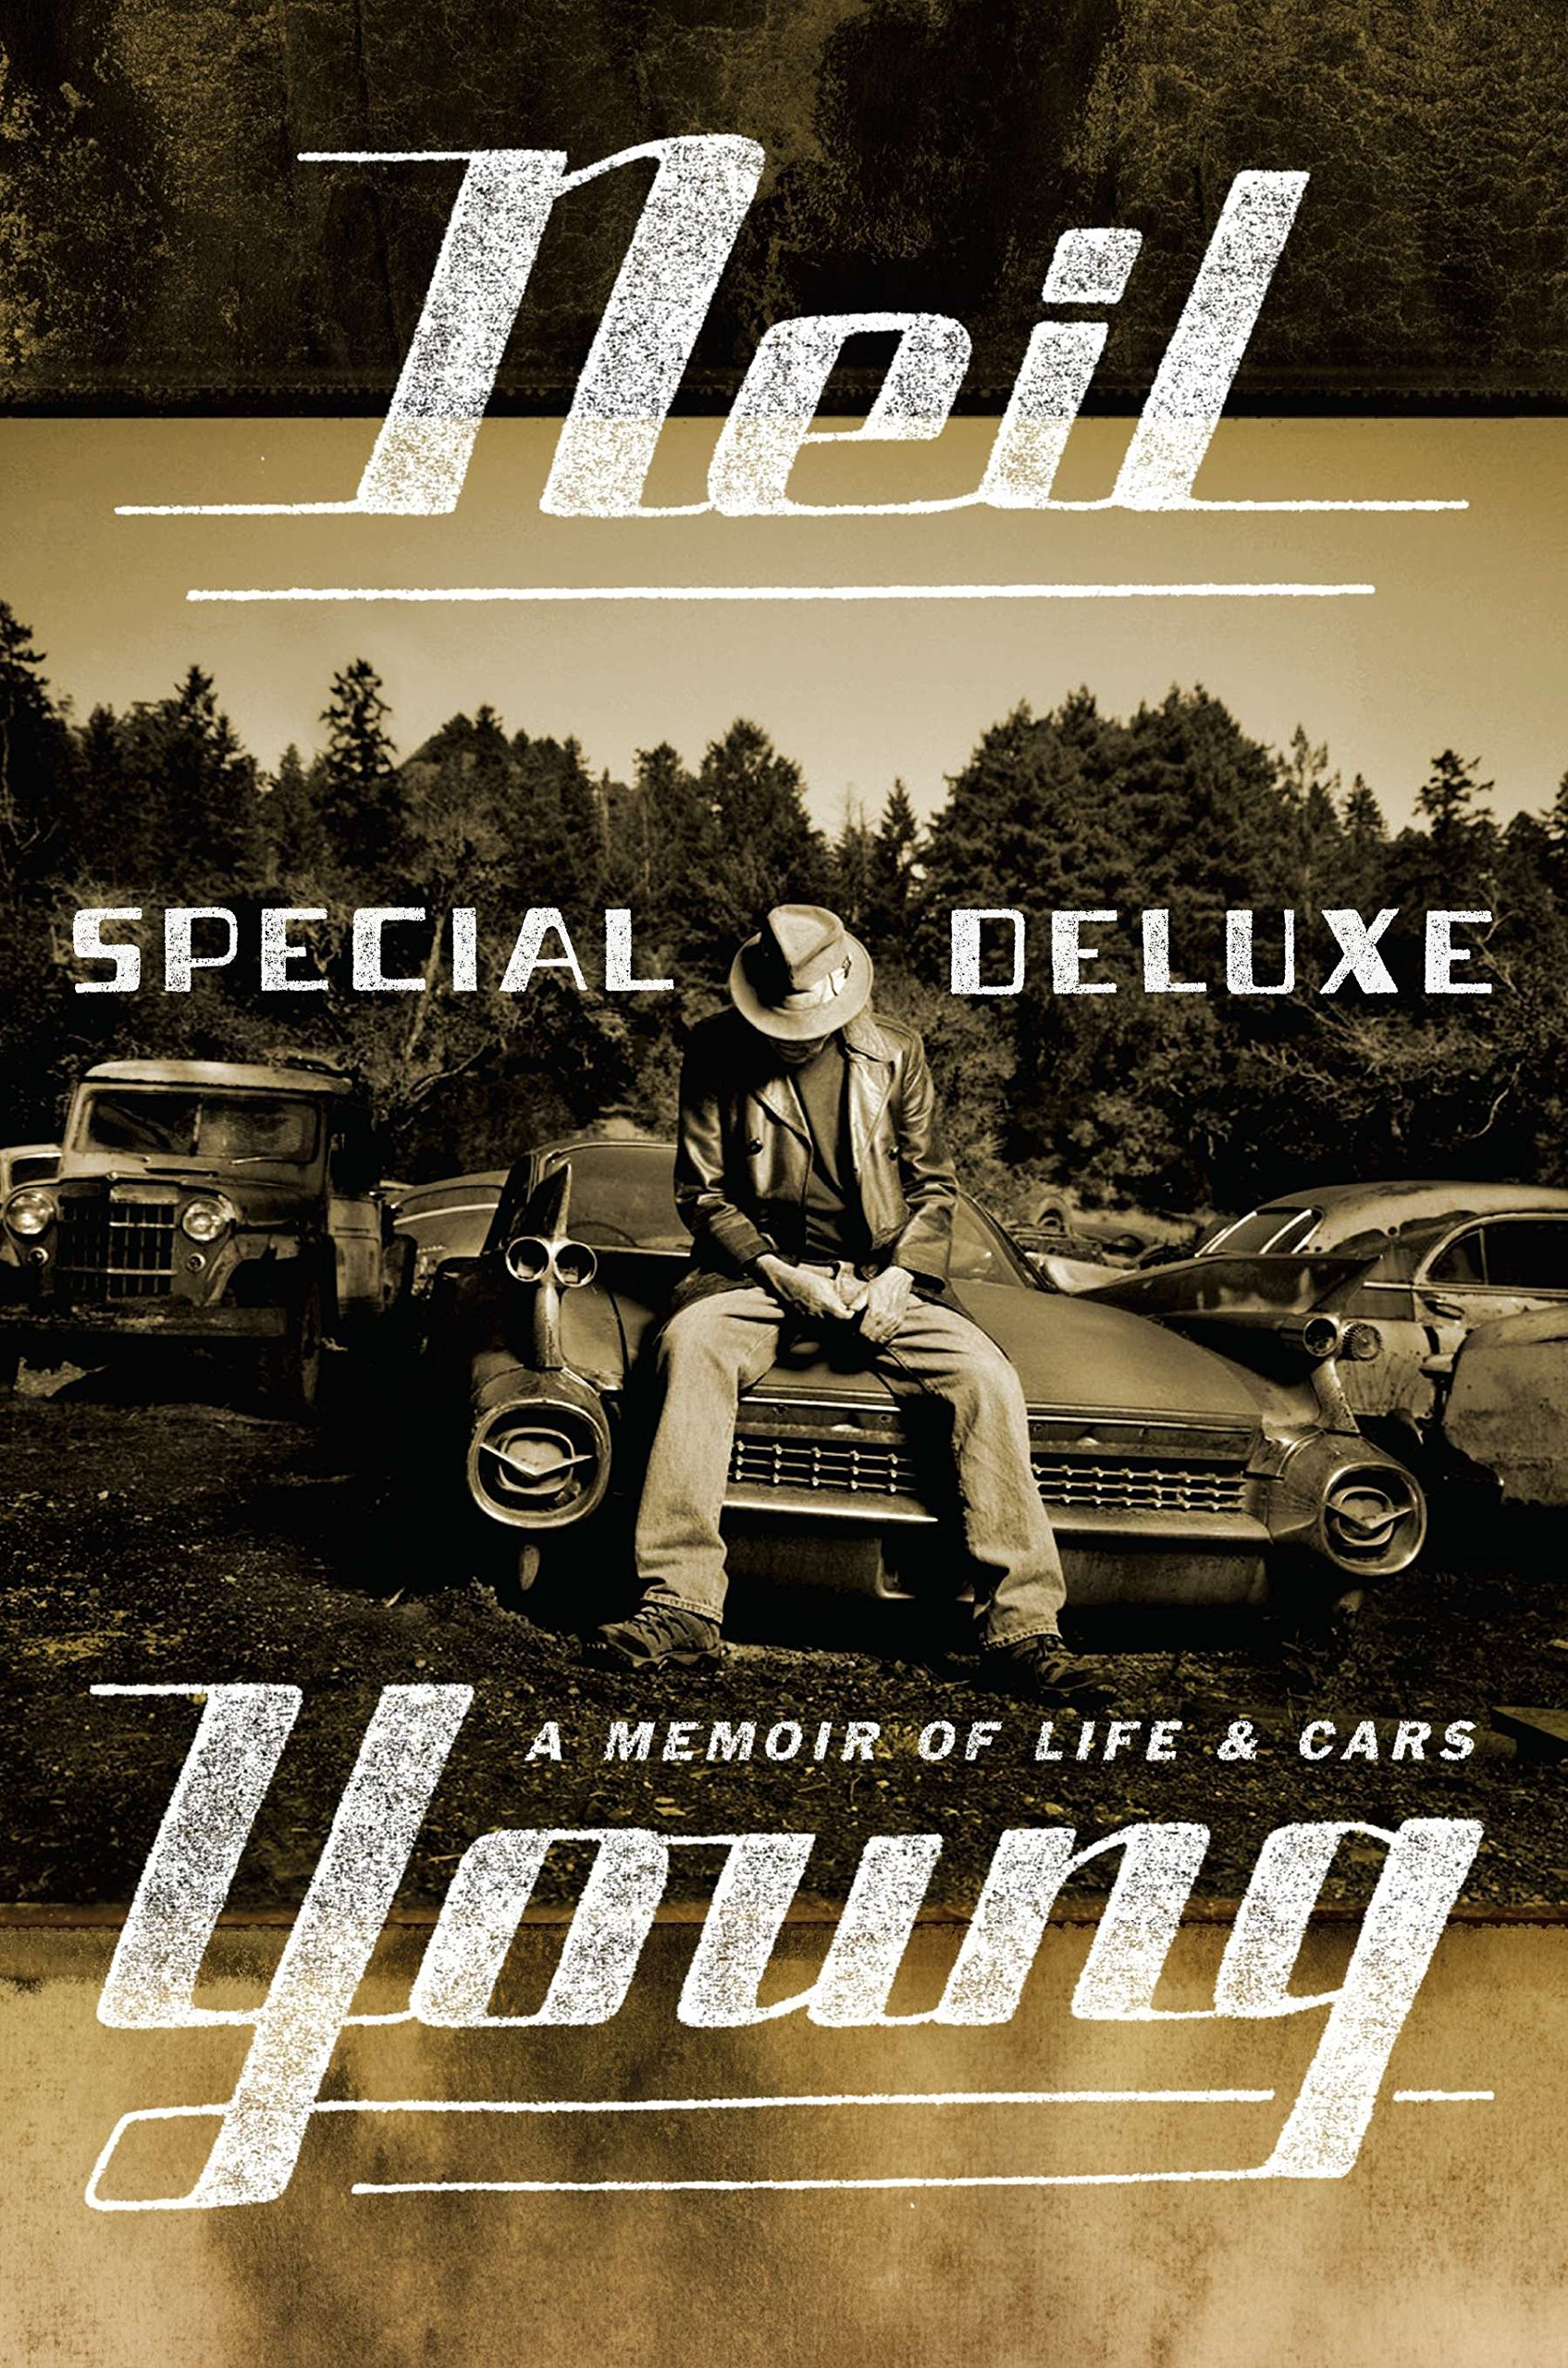 Amazon fr - Special Deluxe: A Memoir of Life & Cars - Neil